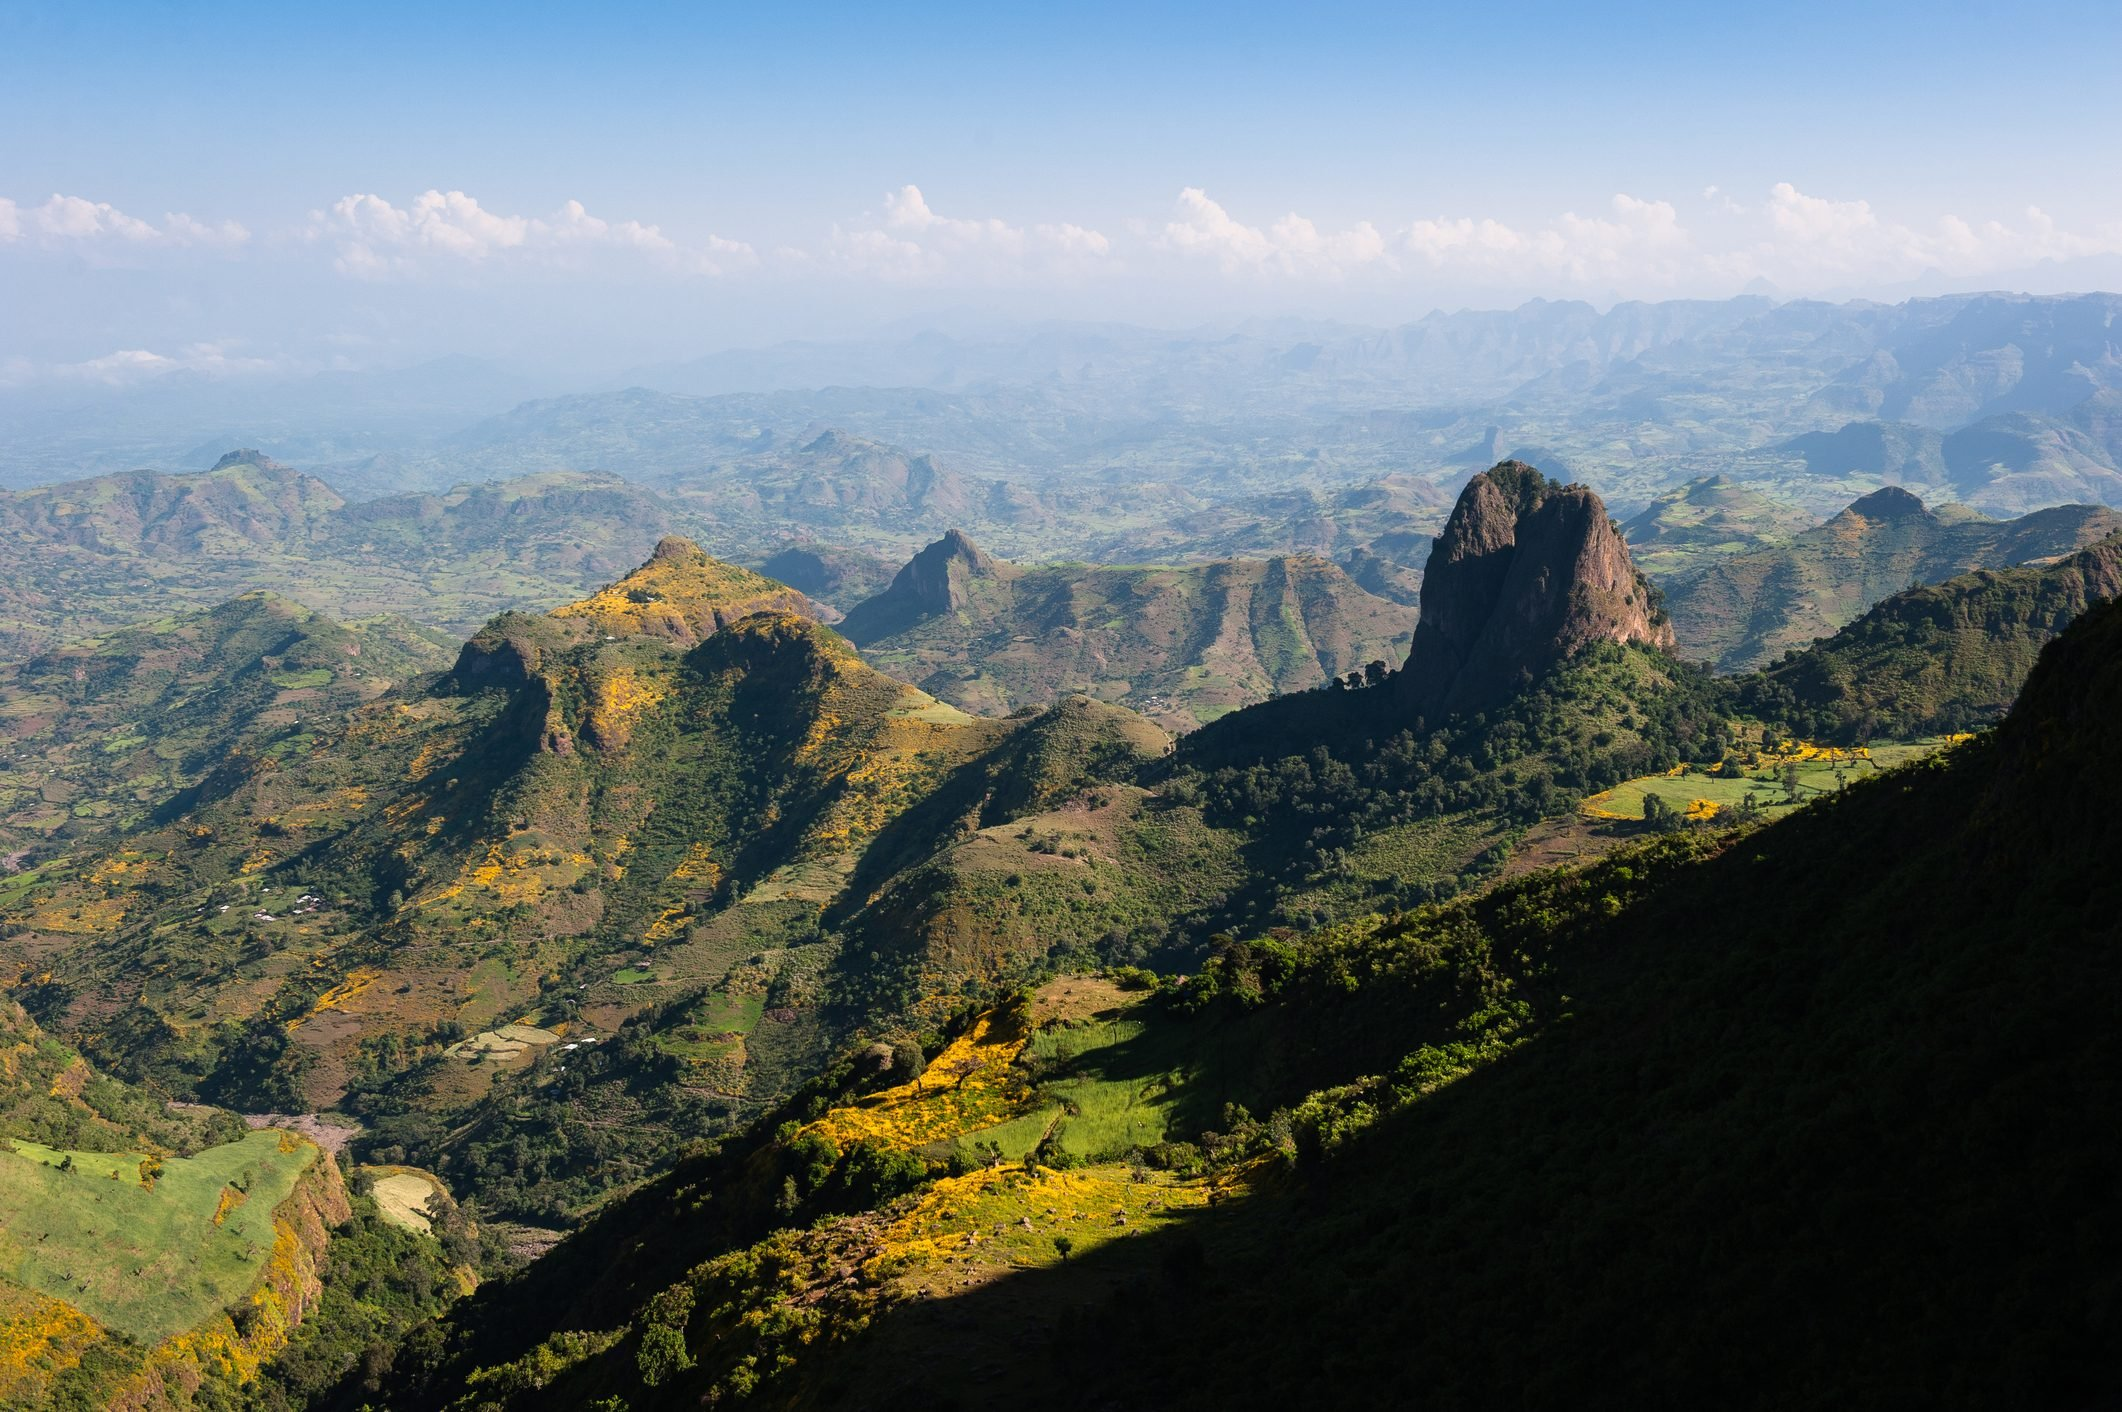 Beautiful clear view across the Simien Mountains on the road between Gonder and Debark, Ethiopia